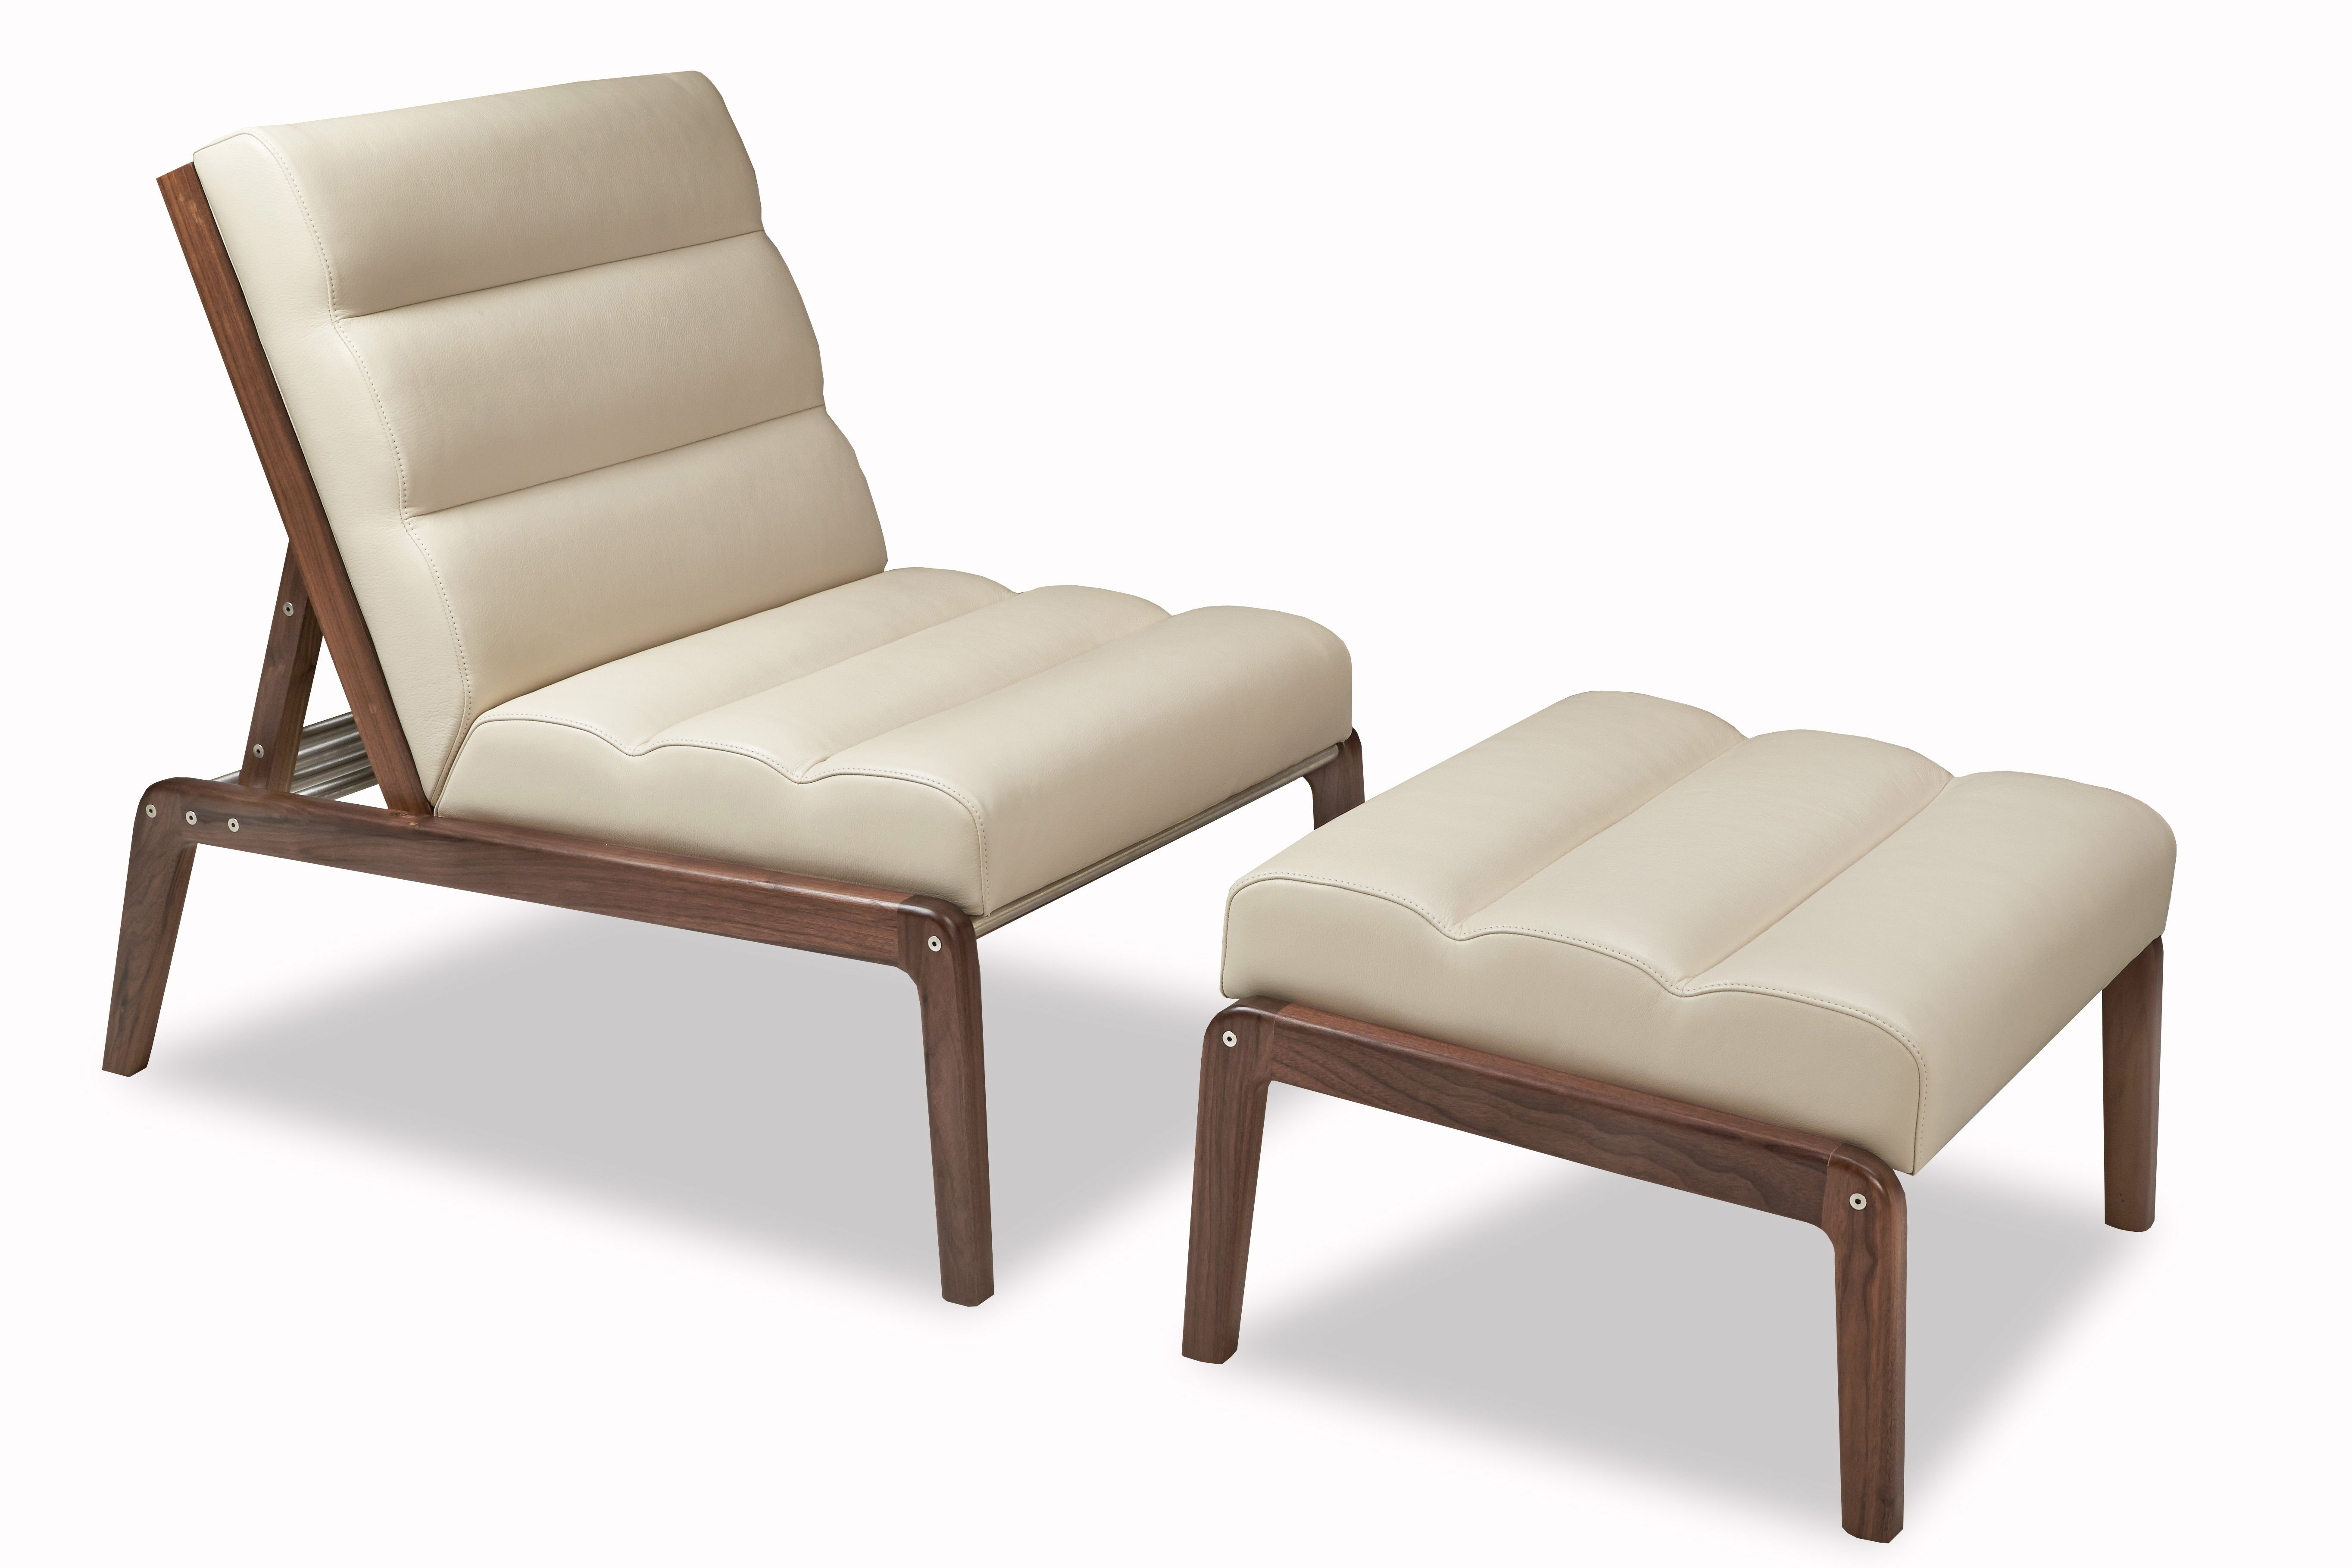 Take a seat: The Morris cair and Knox daybed are from American Leather's American Walnut collection.